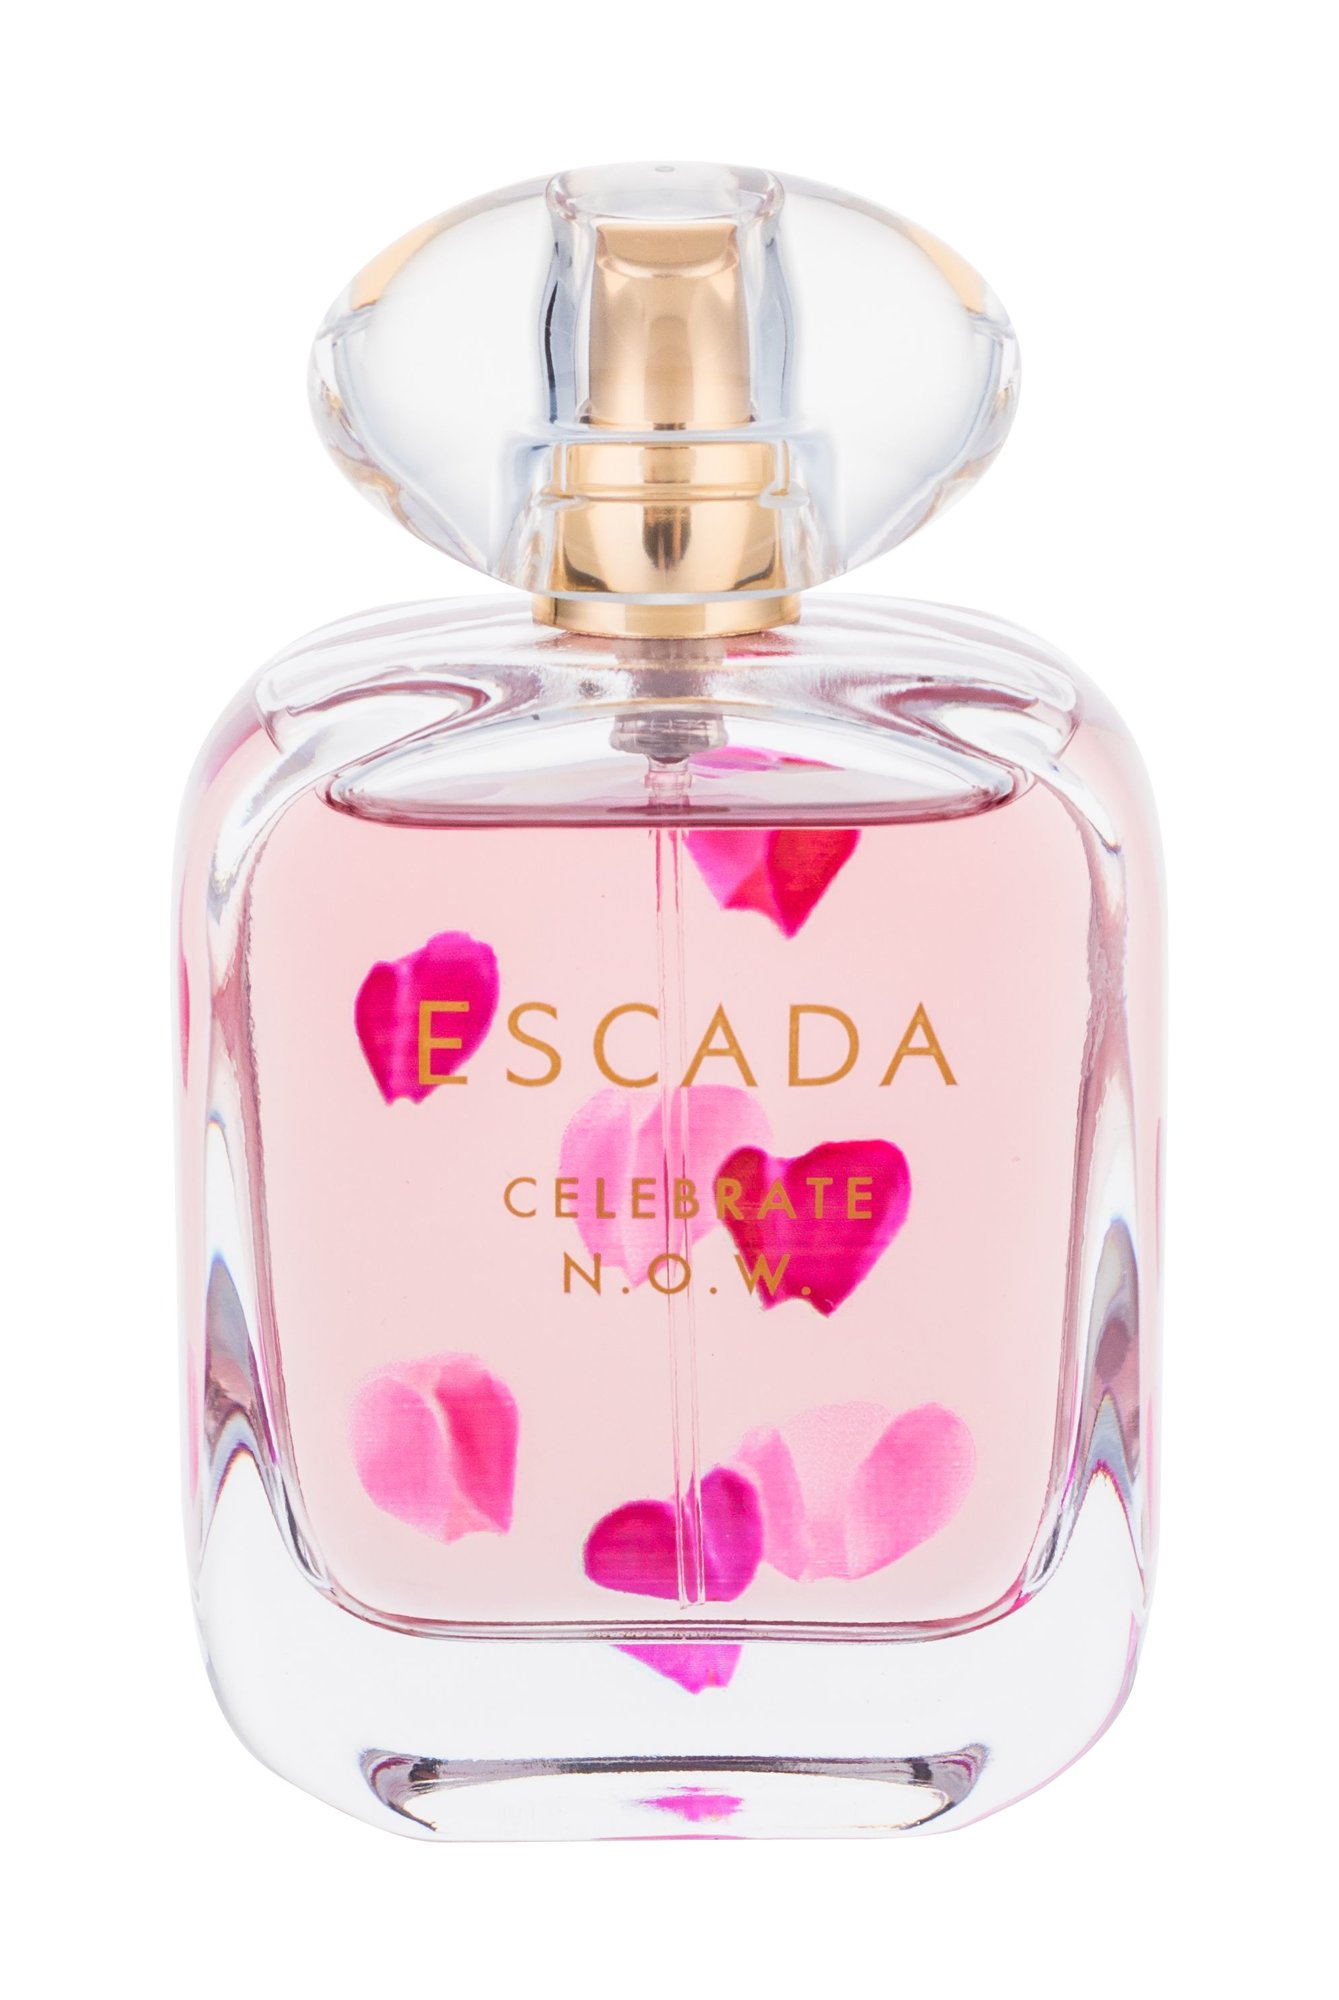 ESCADA Celebrate N.O.W. Eau de Parfum 80ml